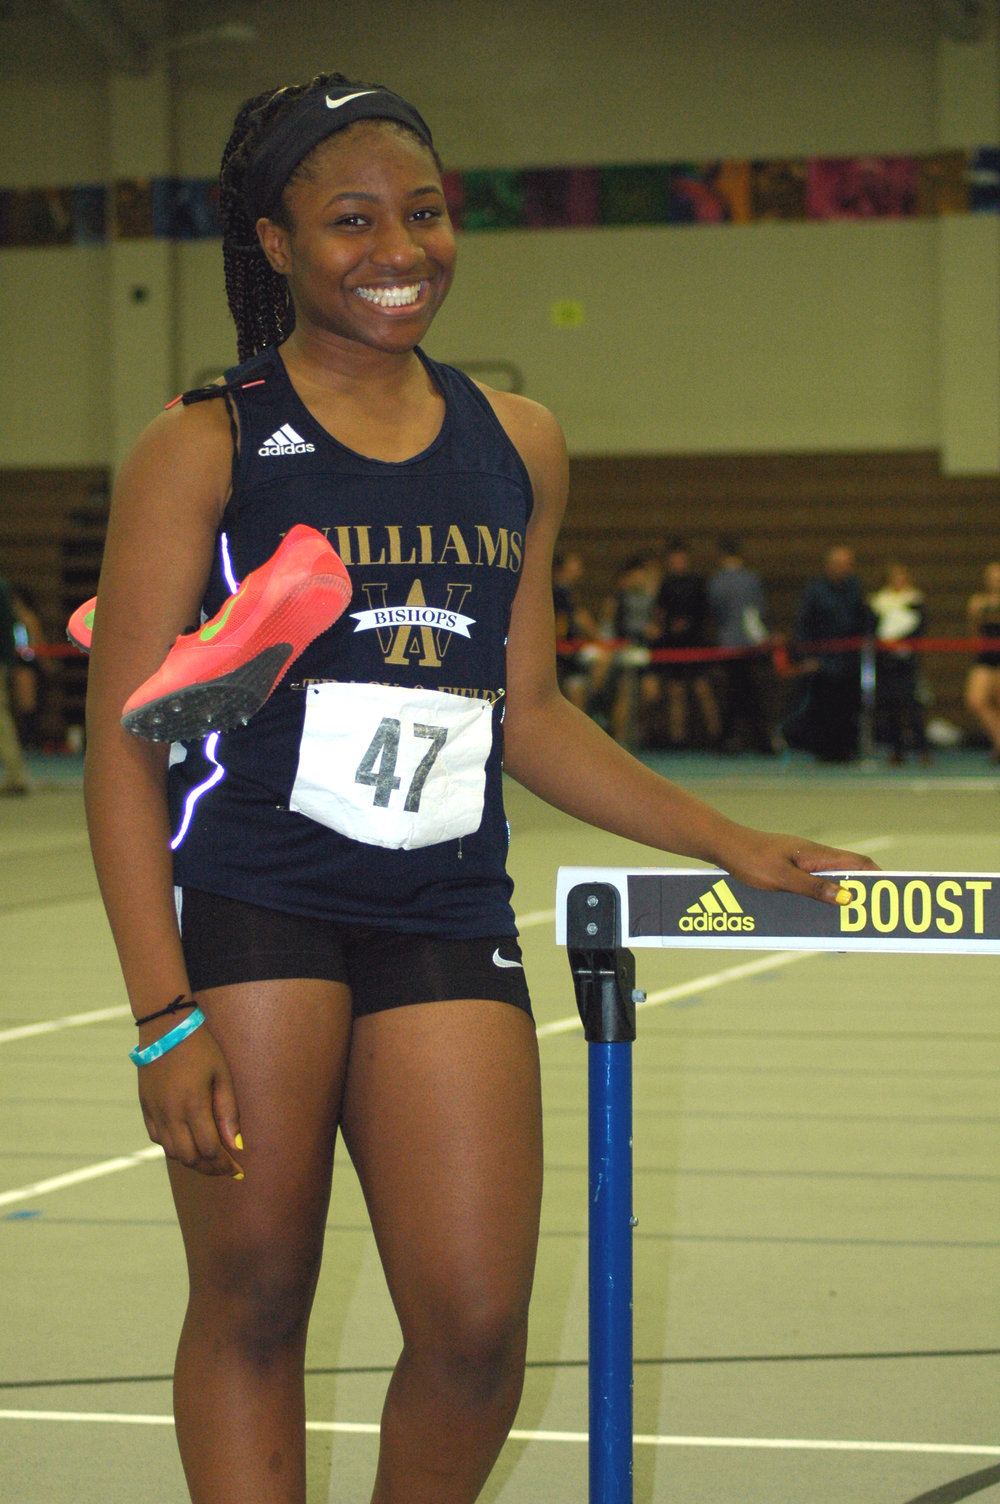 Record Breaker: Chigozie Sumani recently broke the AWHS record for the 55 Meter Hurdles